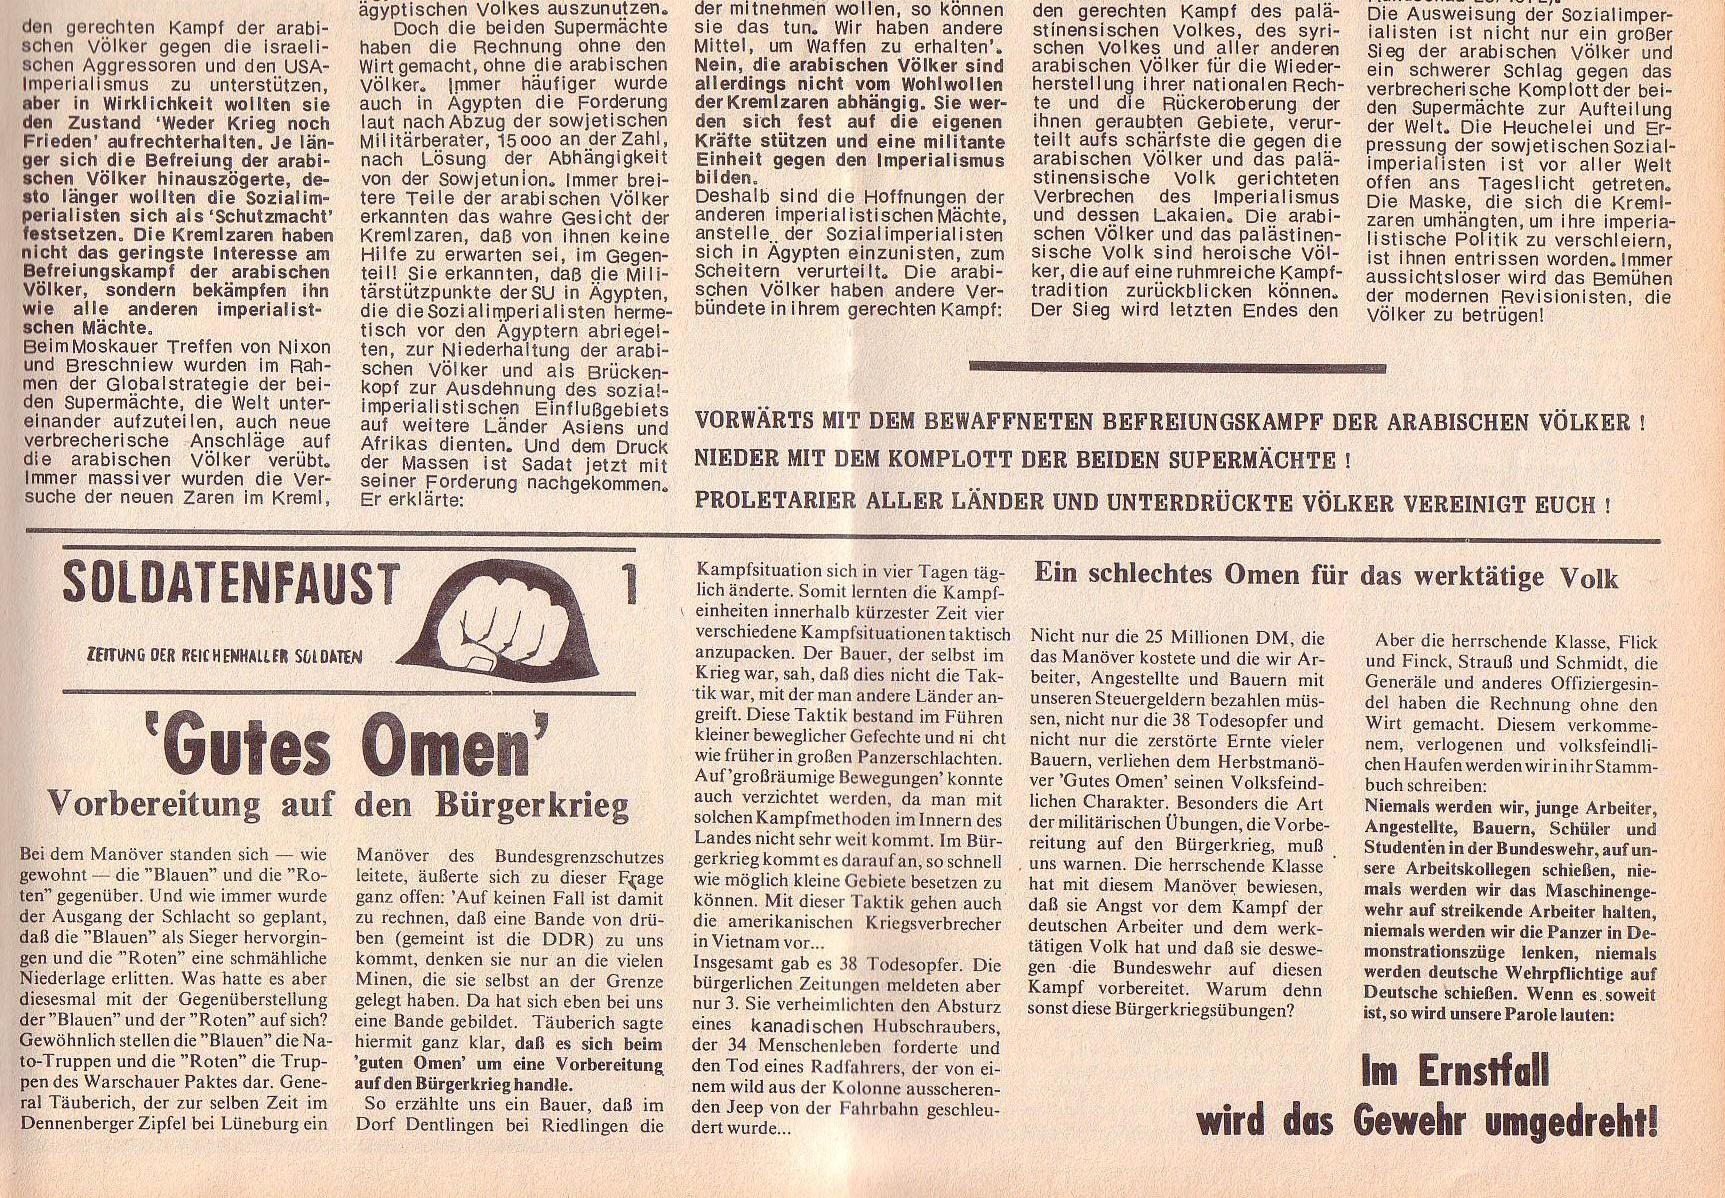 Roter Morgen, 6. Jg., 14. August 1972, Nr. 16, Seite 5b